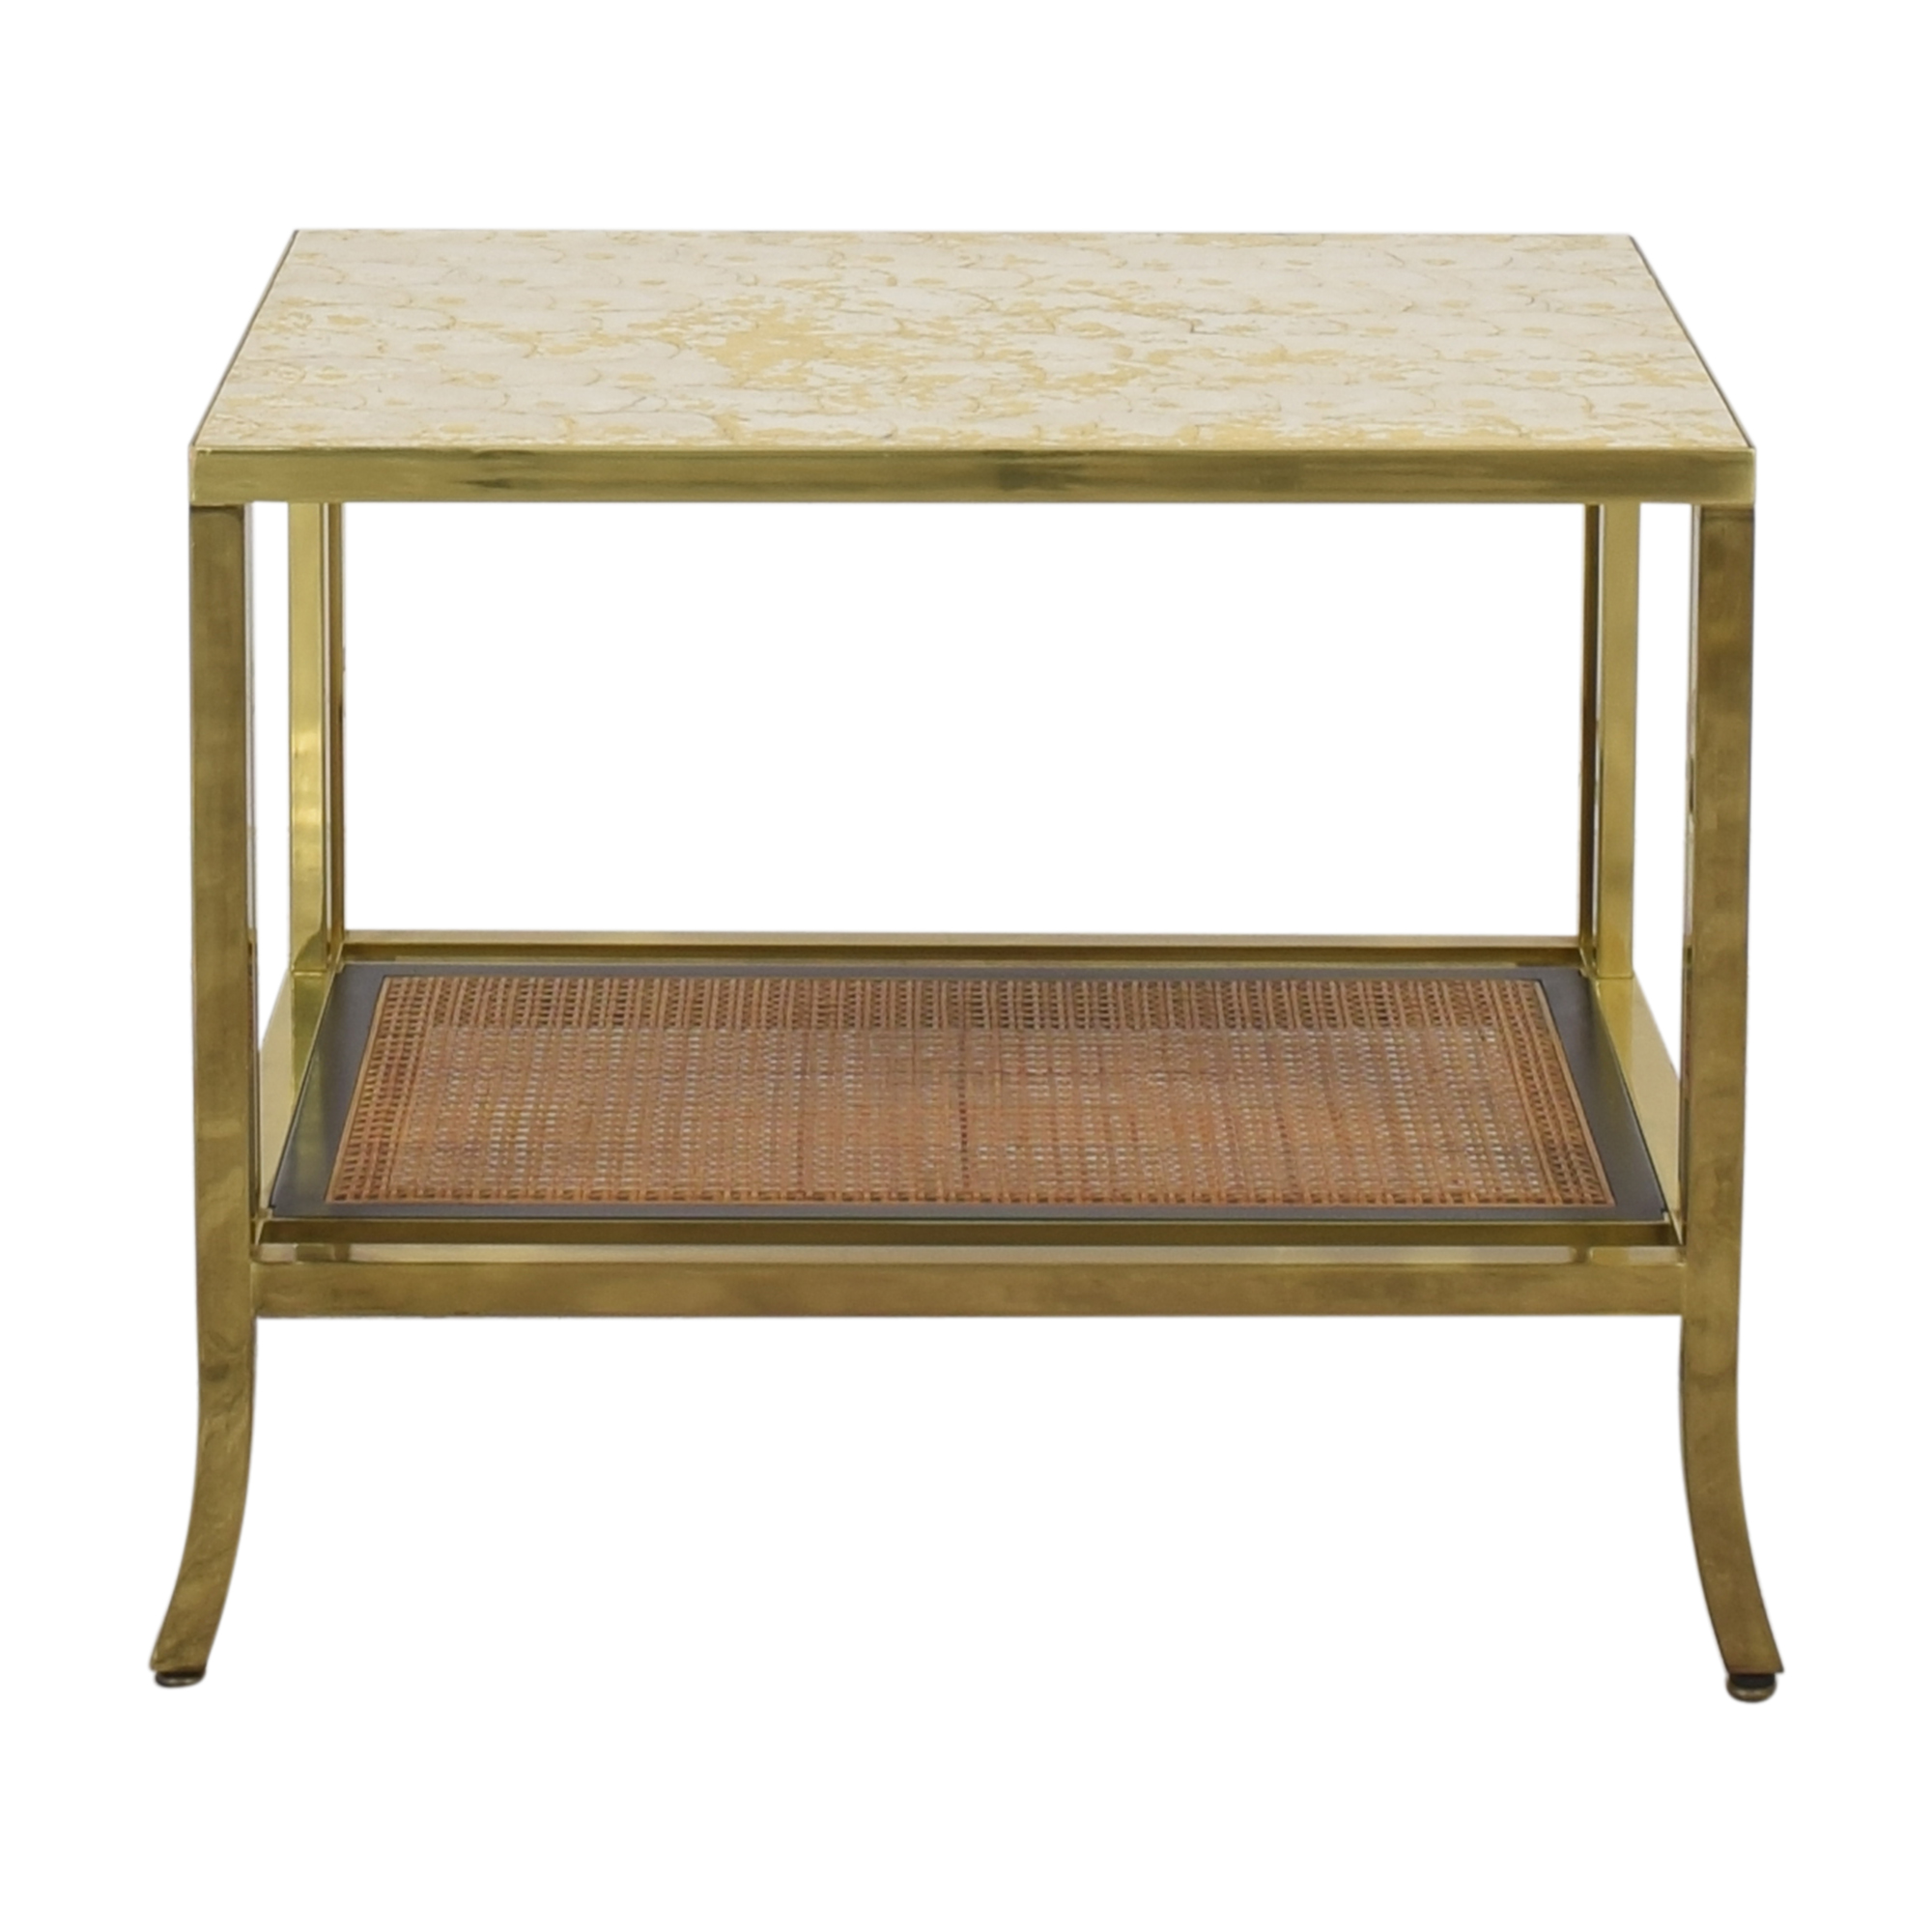 John Stuart Inc. John Stuart End Table for sale